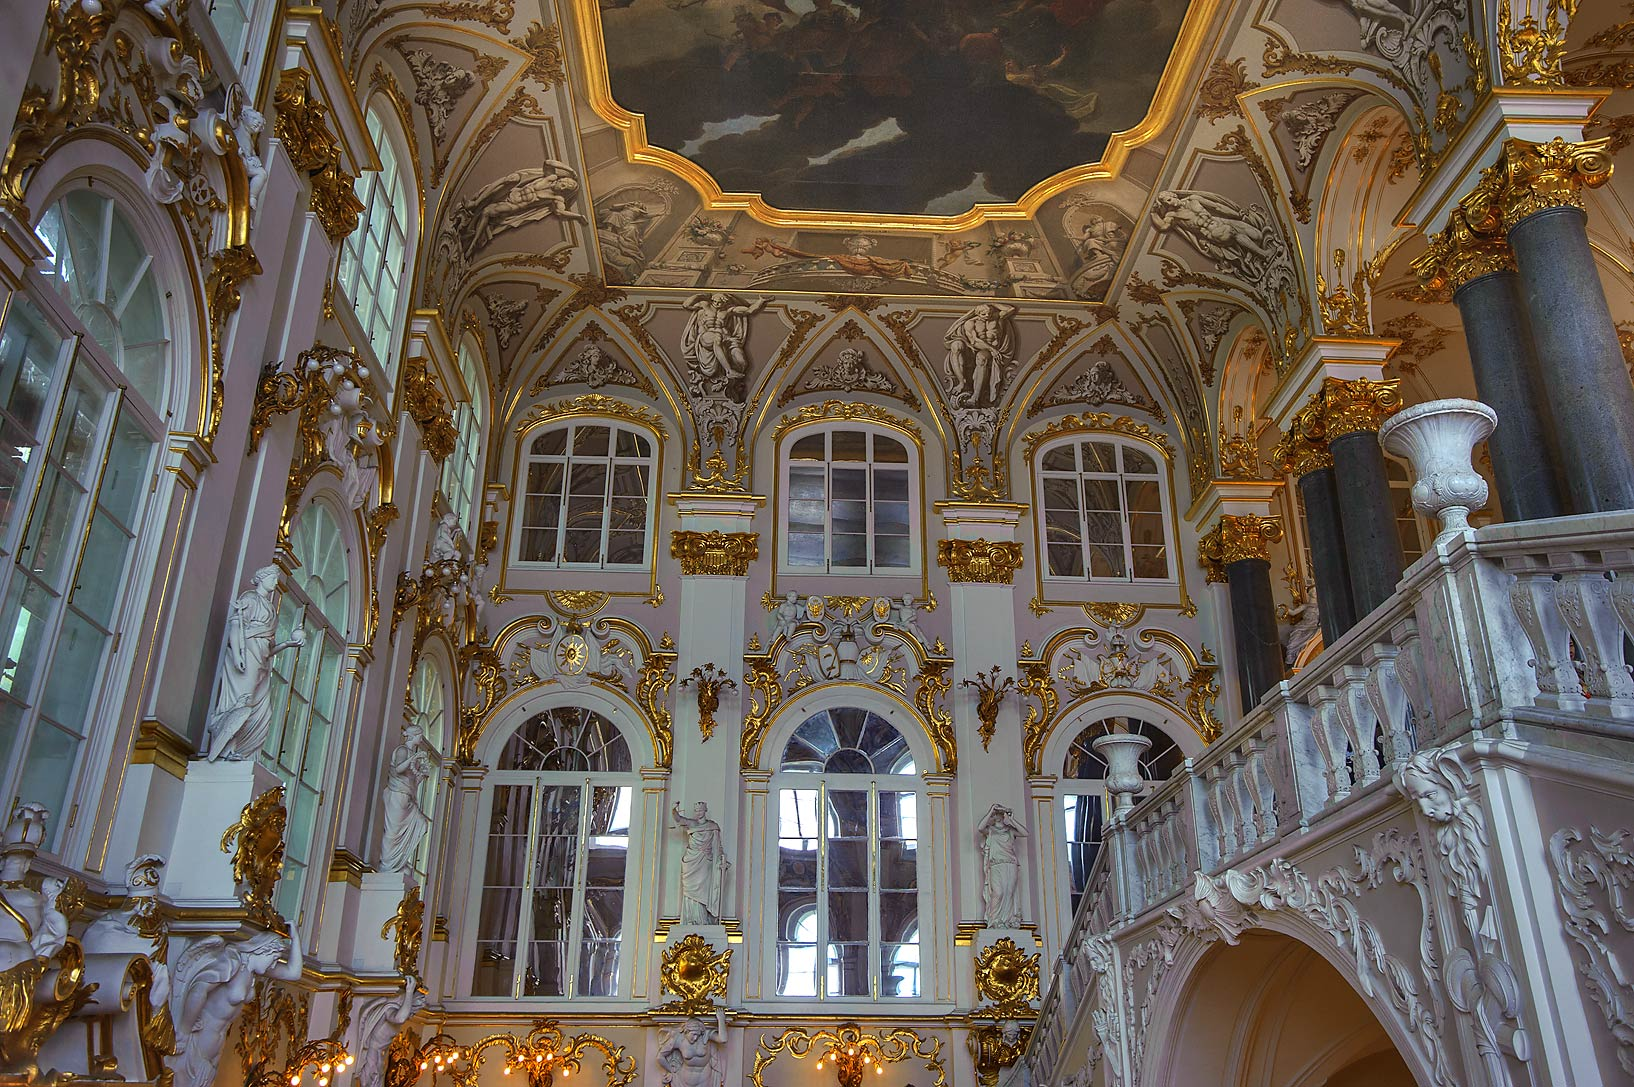 Grand staircase in Hermitage Museum. Petersburg, Russia